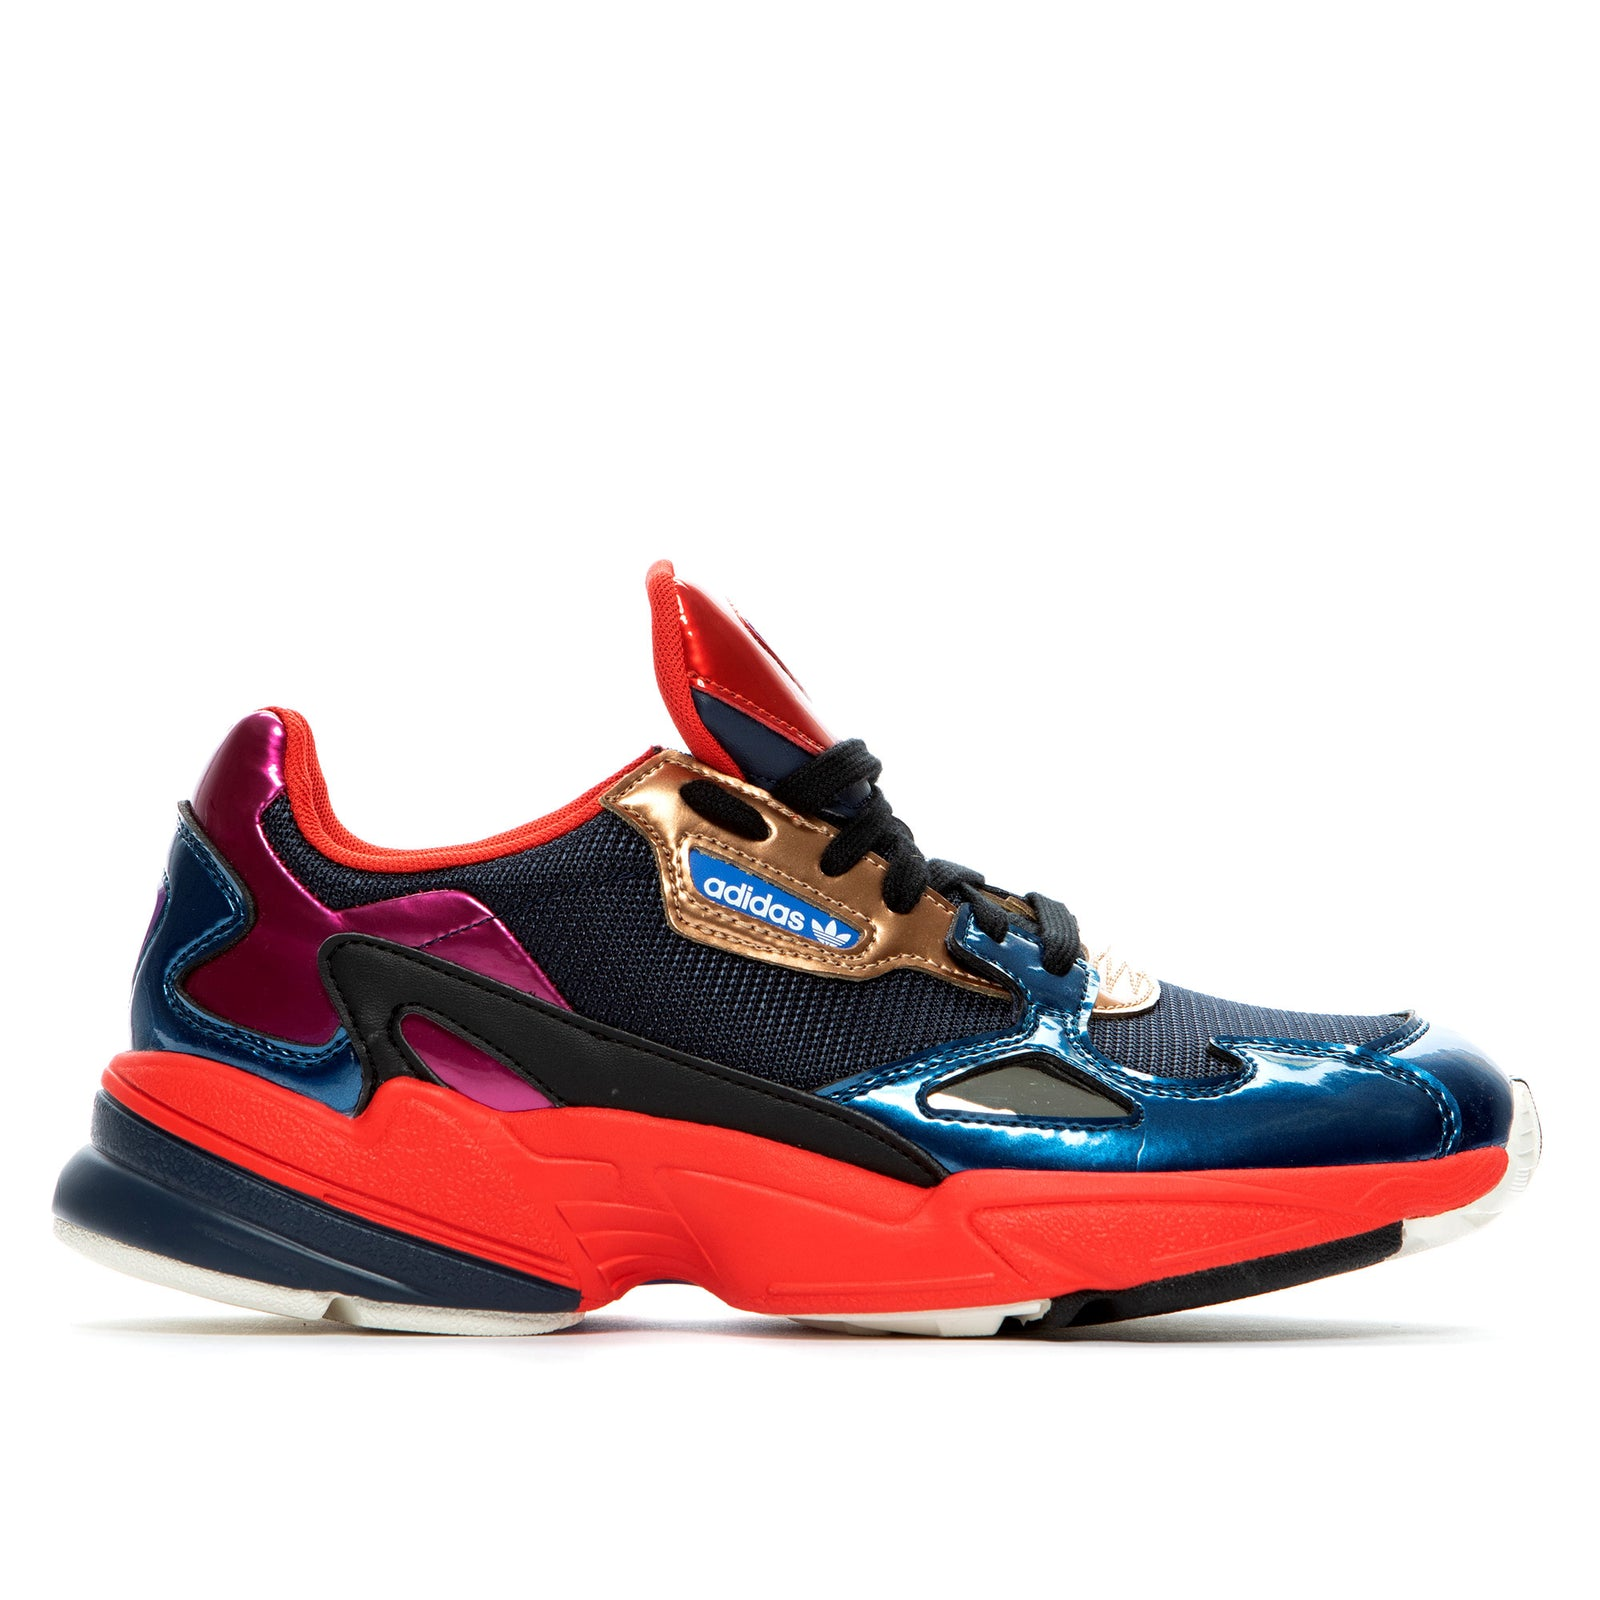 998164b5db15 Adidas Falcon Shoes